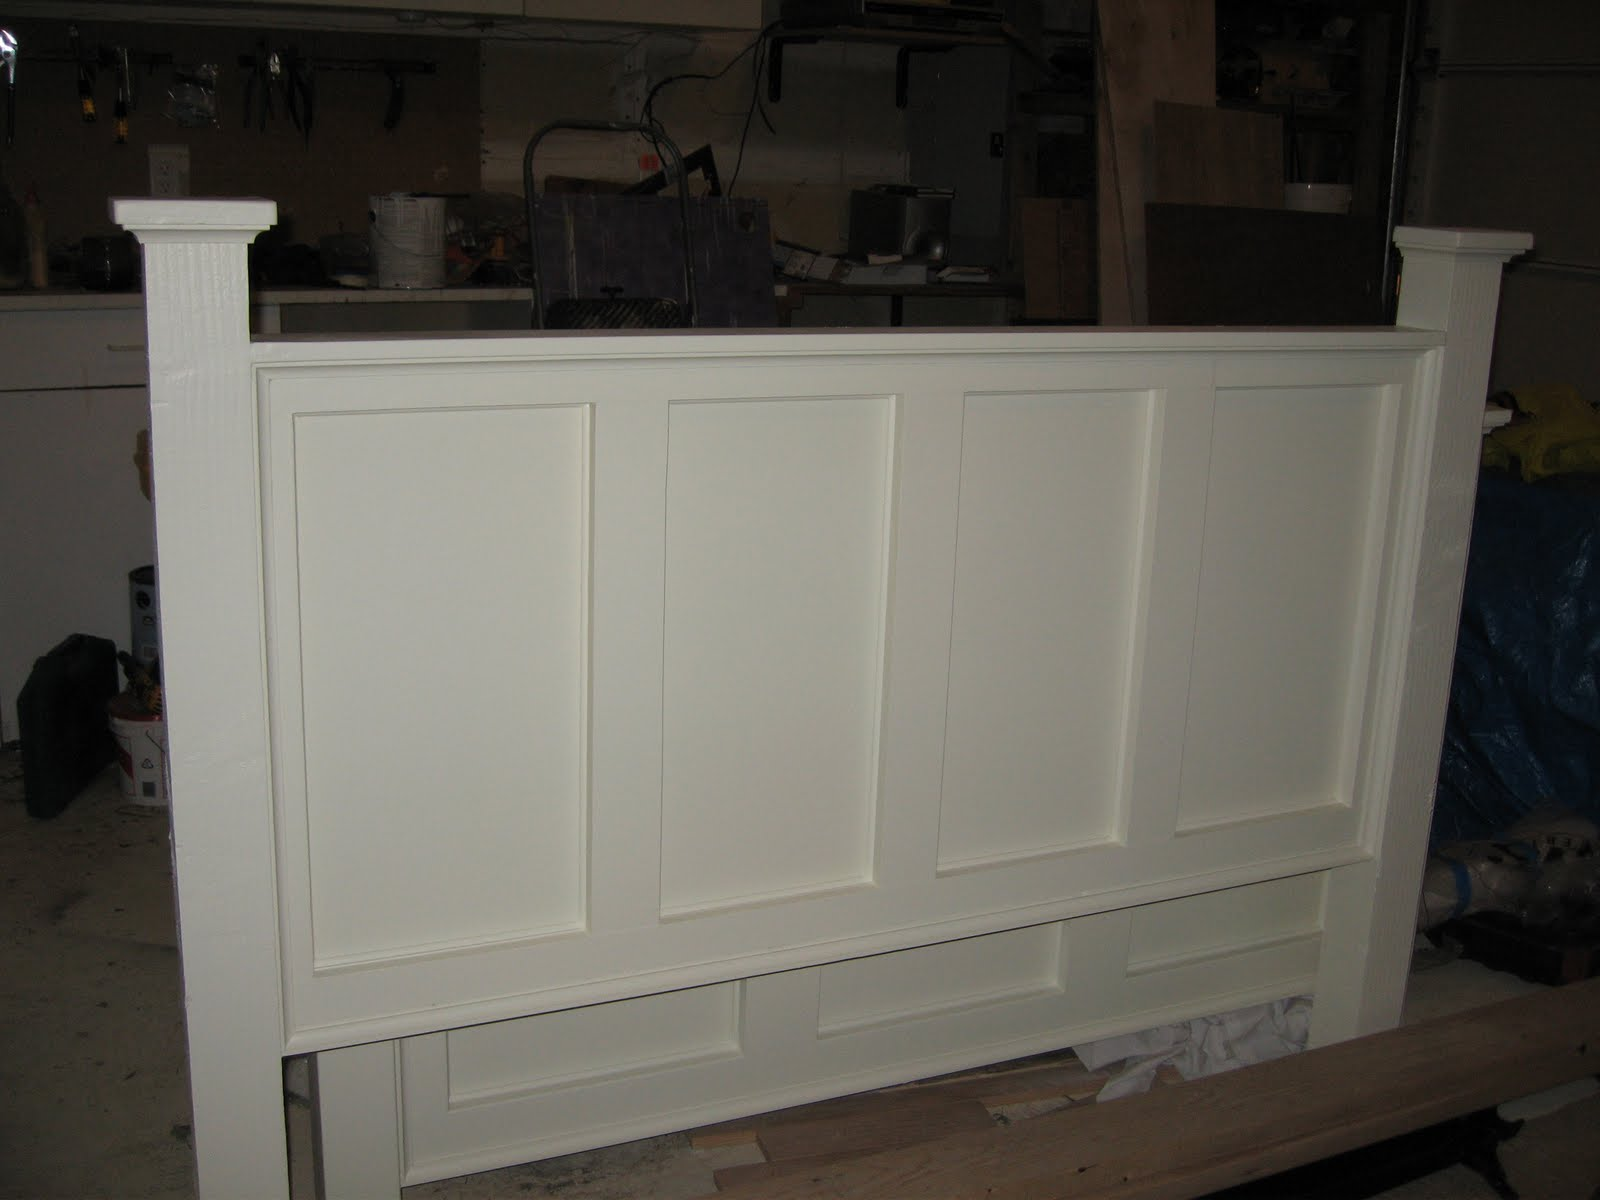 Kitchen CabiDoors Made From Old Headboard